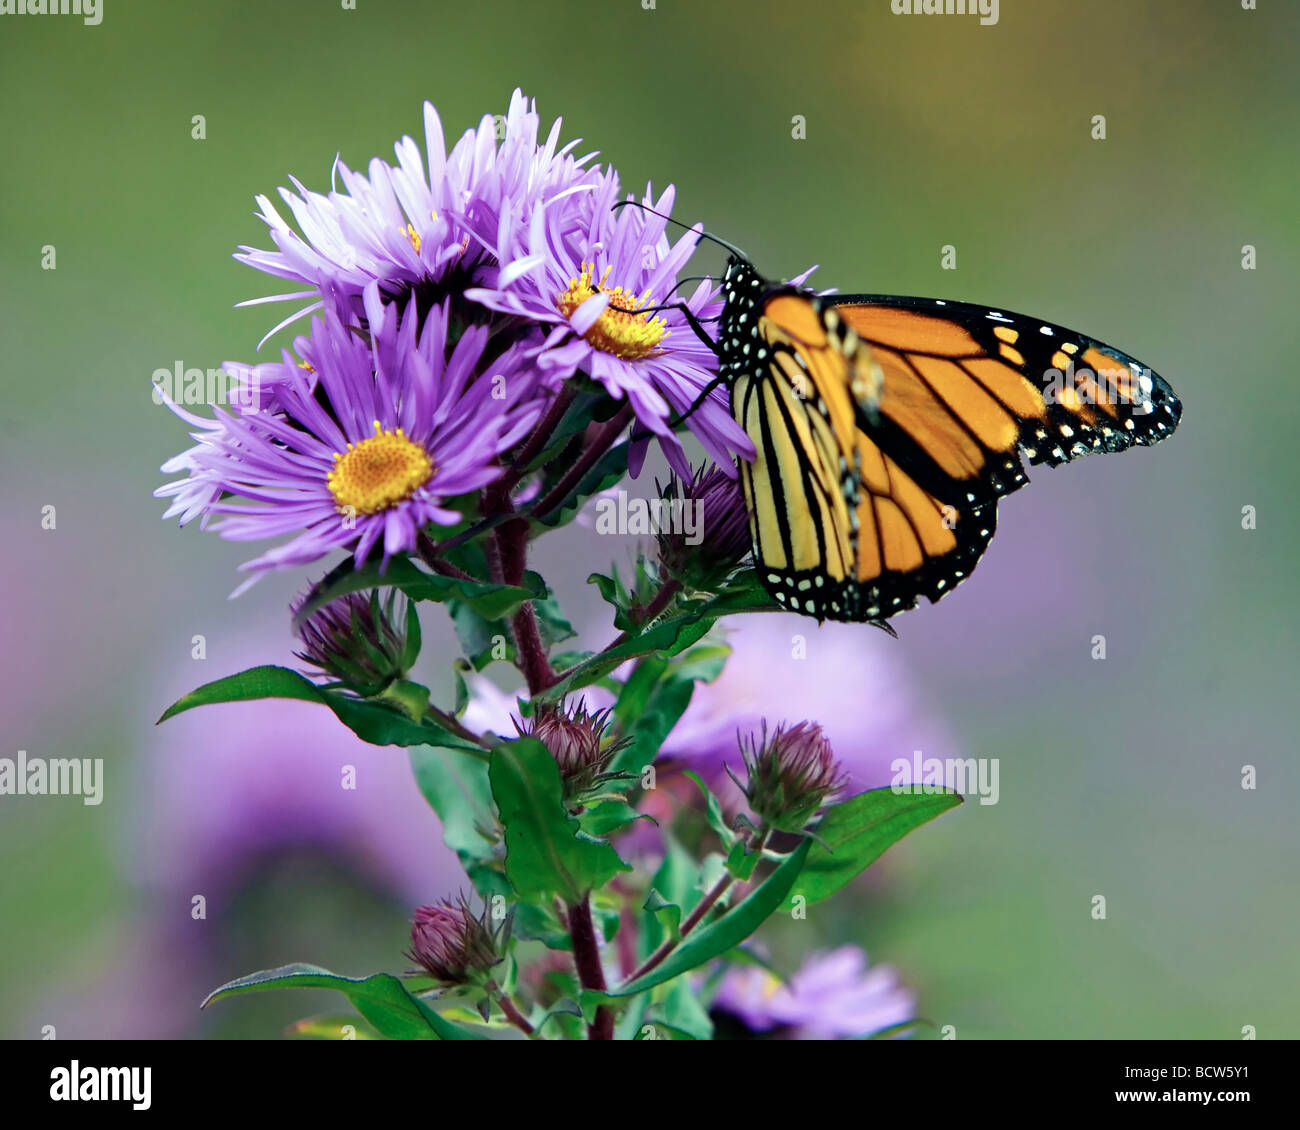 Close-up of a Monarch butterfly (Danaus plexippus) sucking nectar from a flower - Stock Image